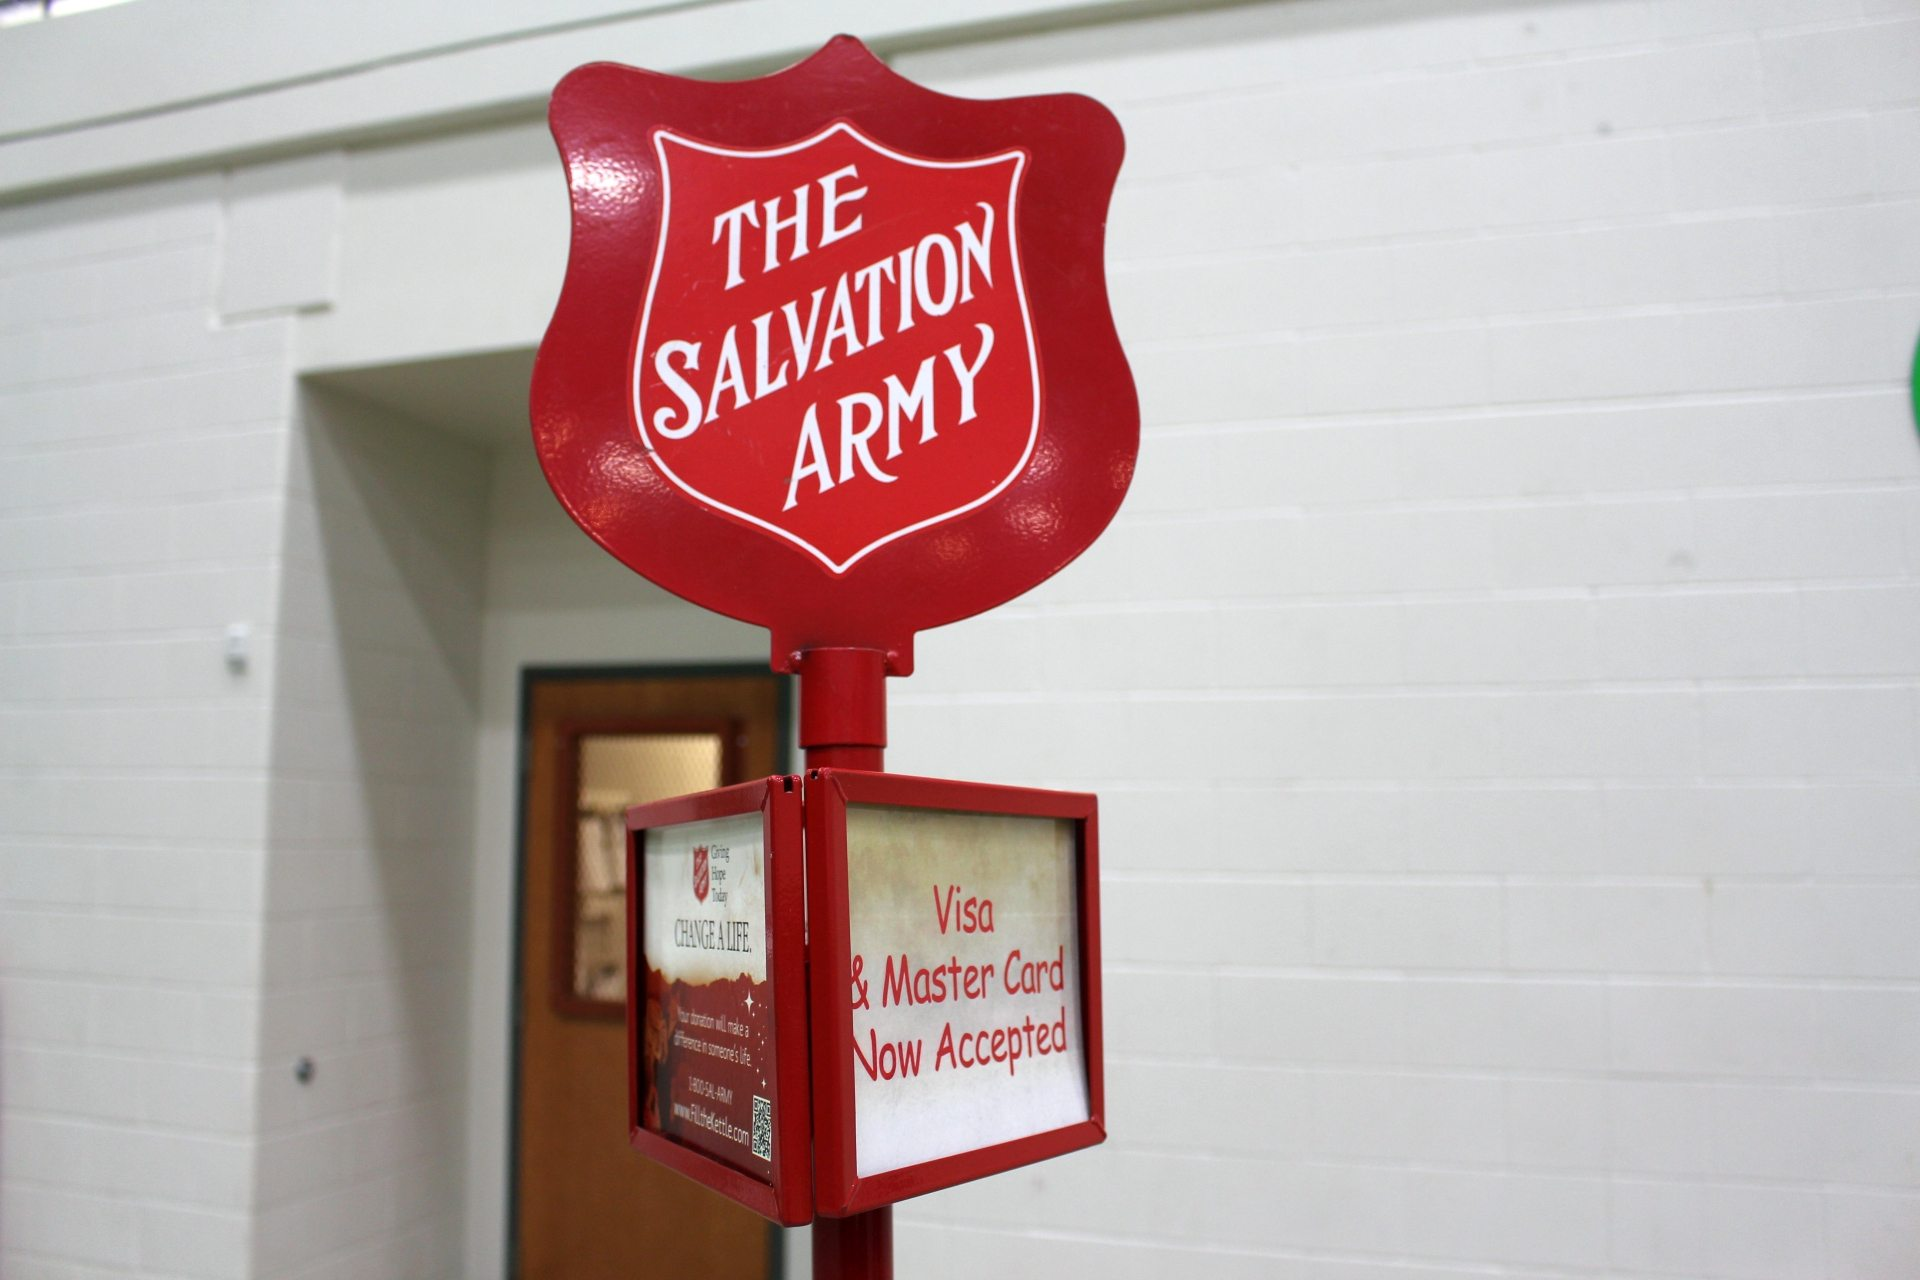 Red kettle drive falling far short in donations in Saginaw County